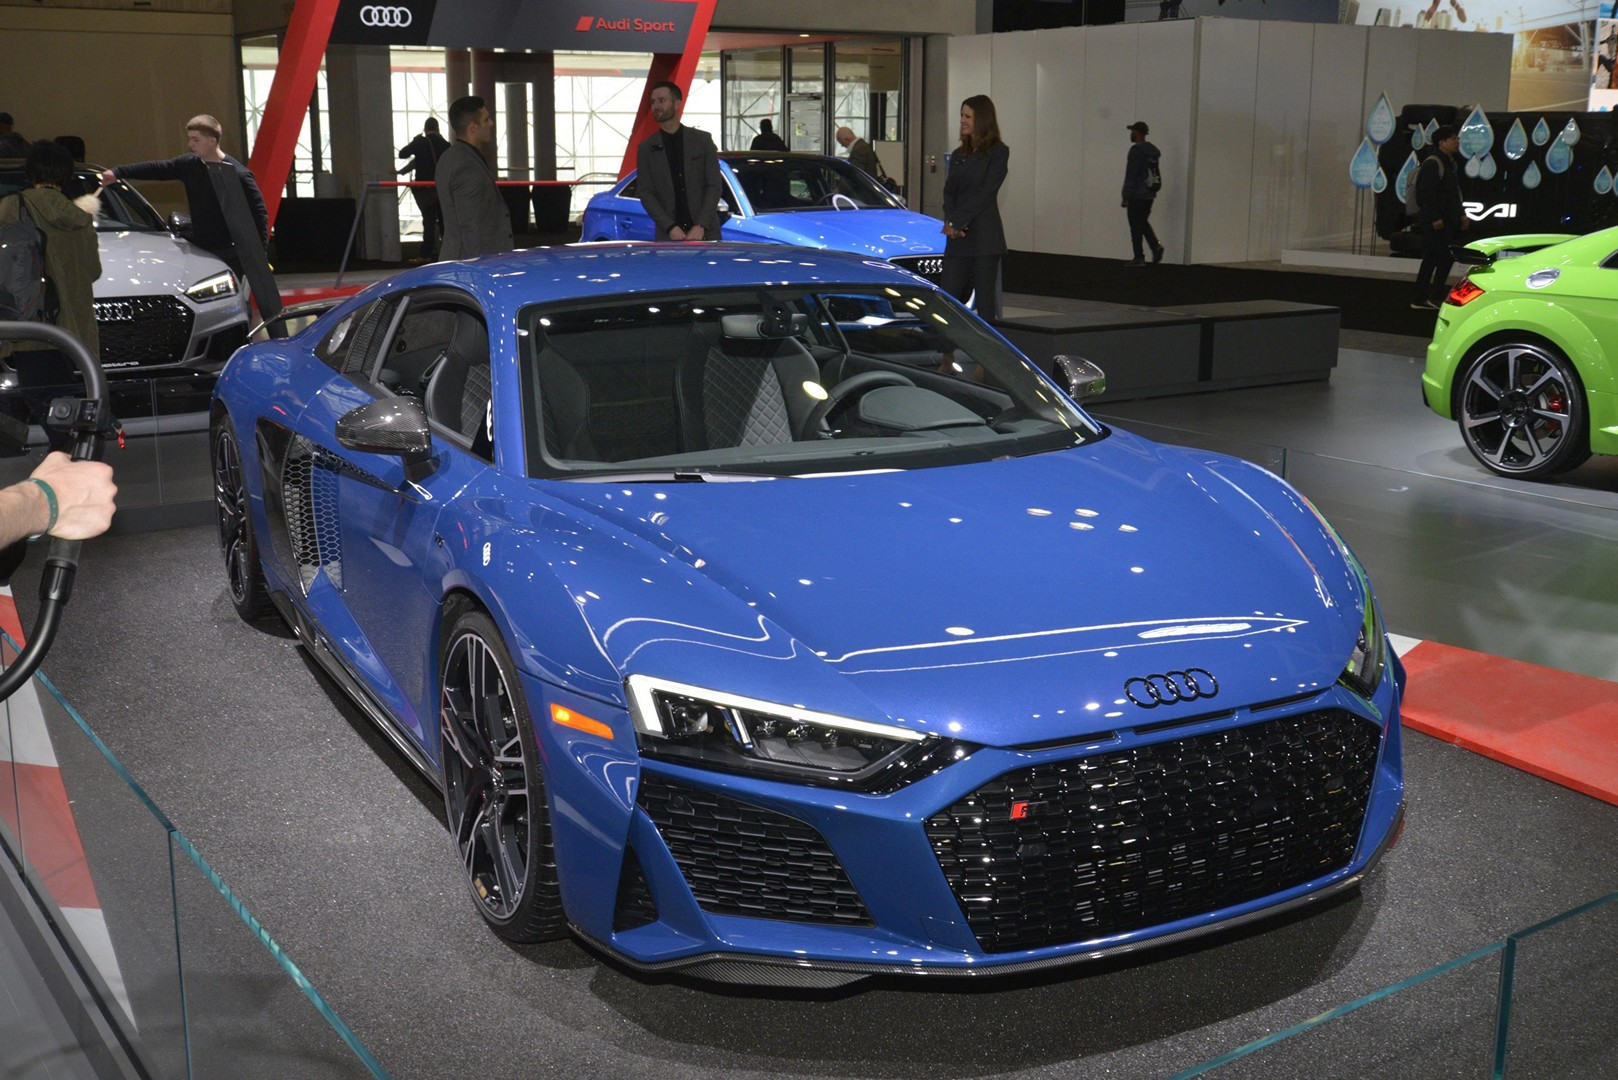 2020 audi r8 makes stateside debut with 602-hp, looks much